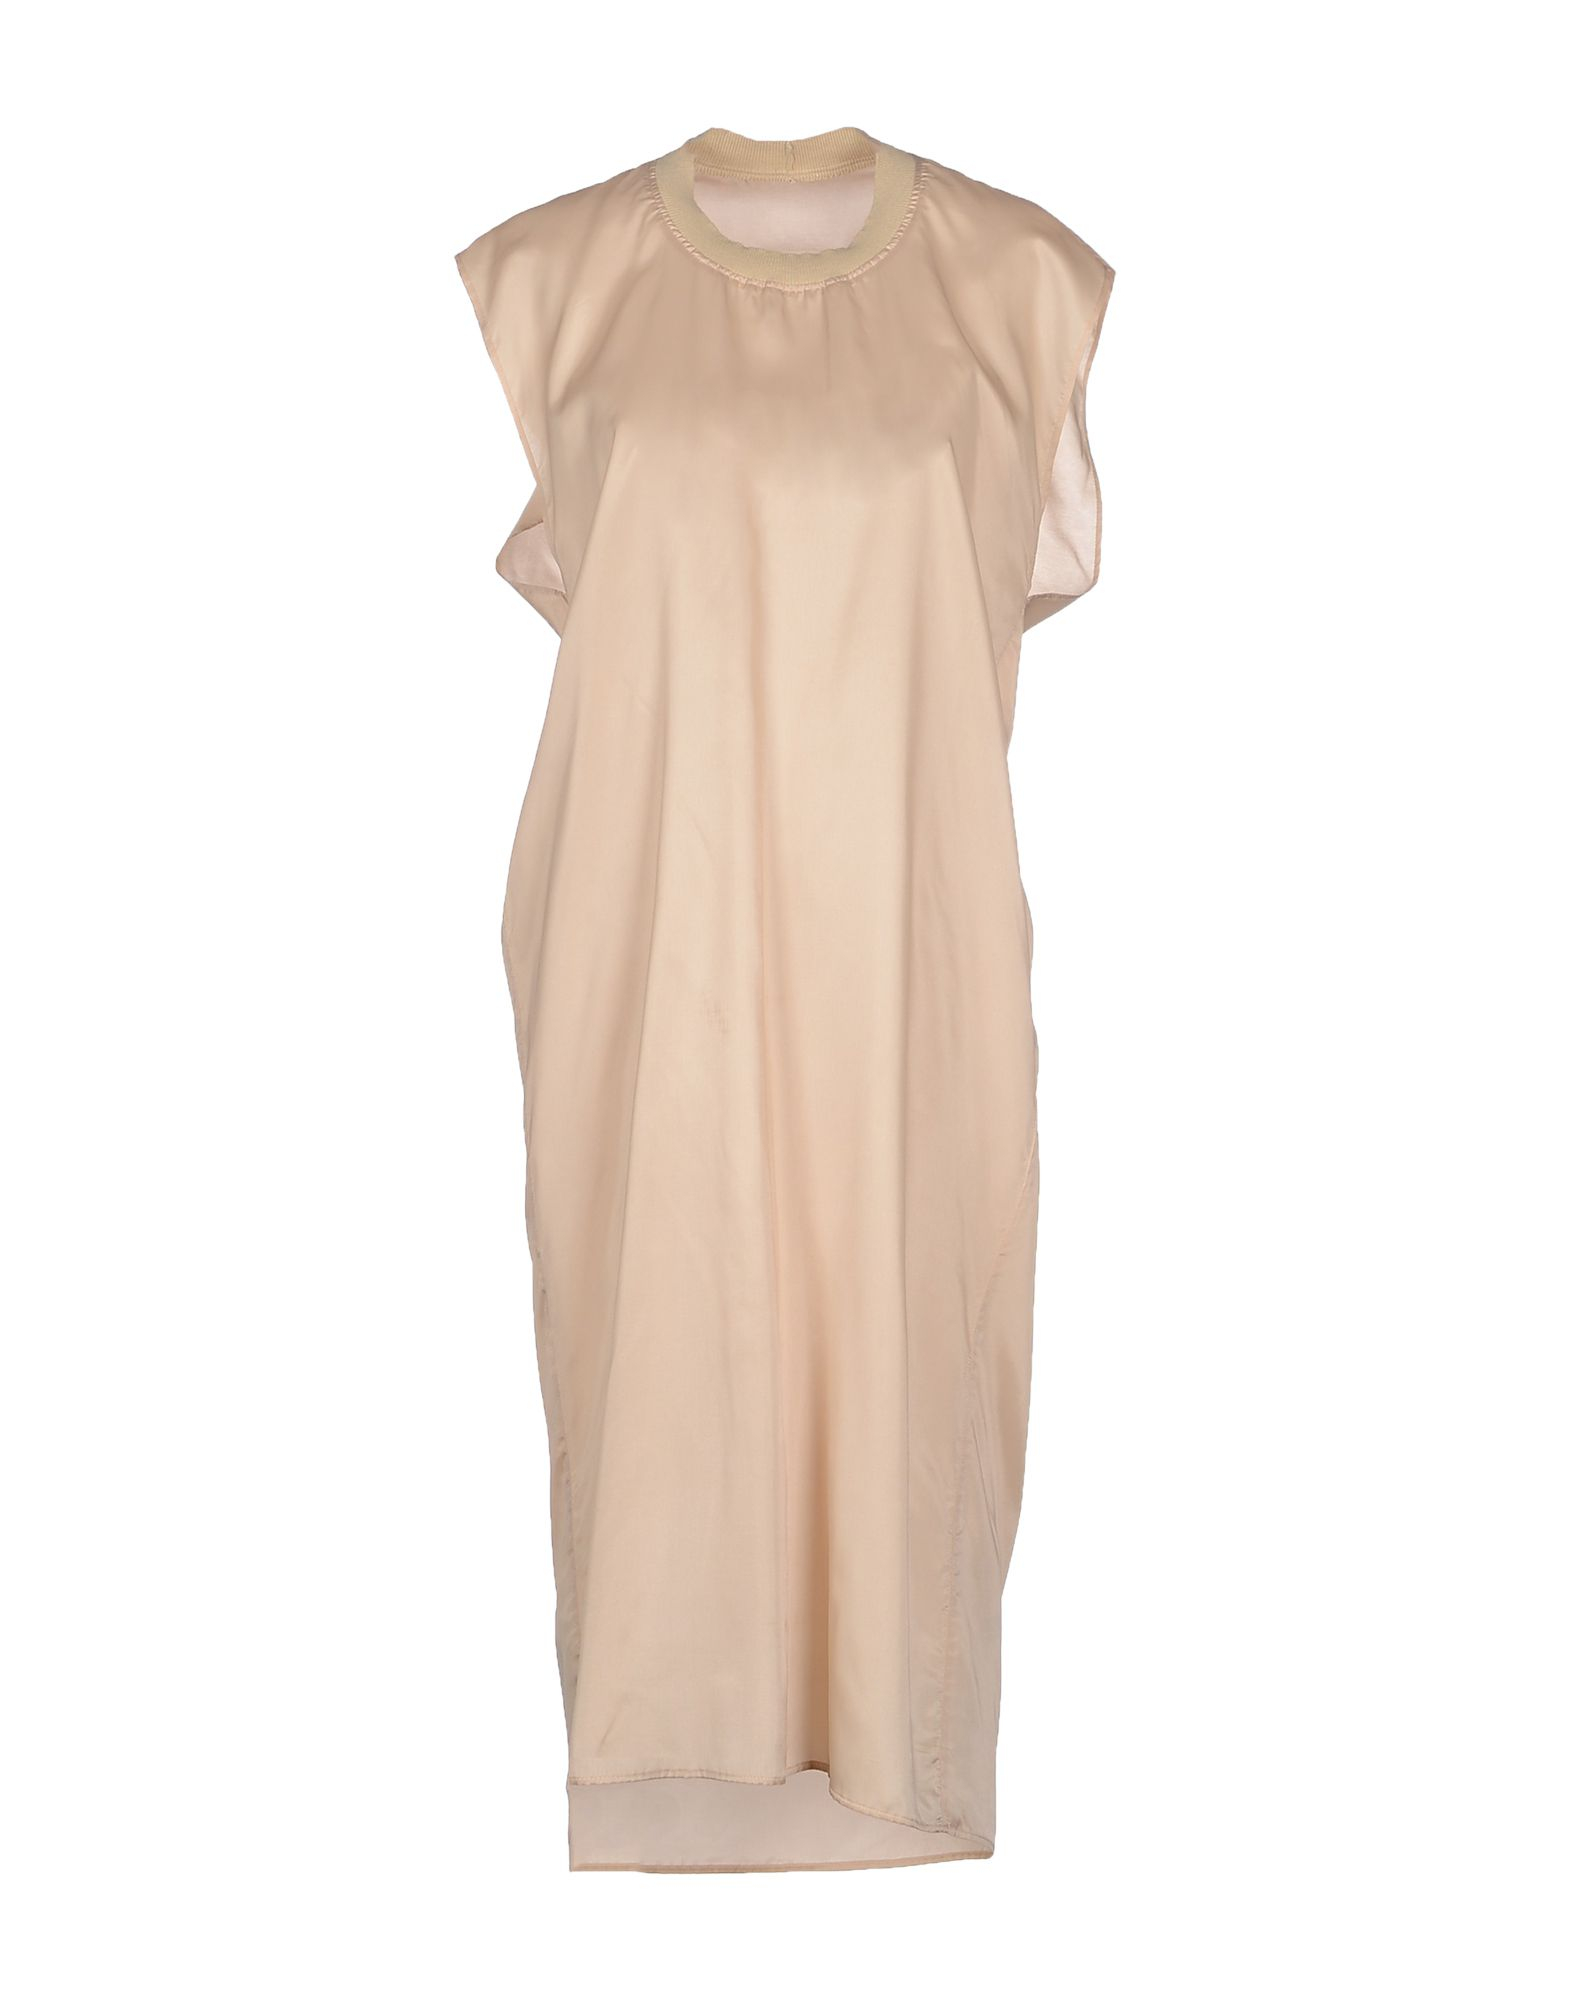 Mm6 by maison martin margiela knee length dress in beige for Mm6 maison margiela